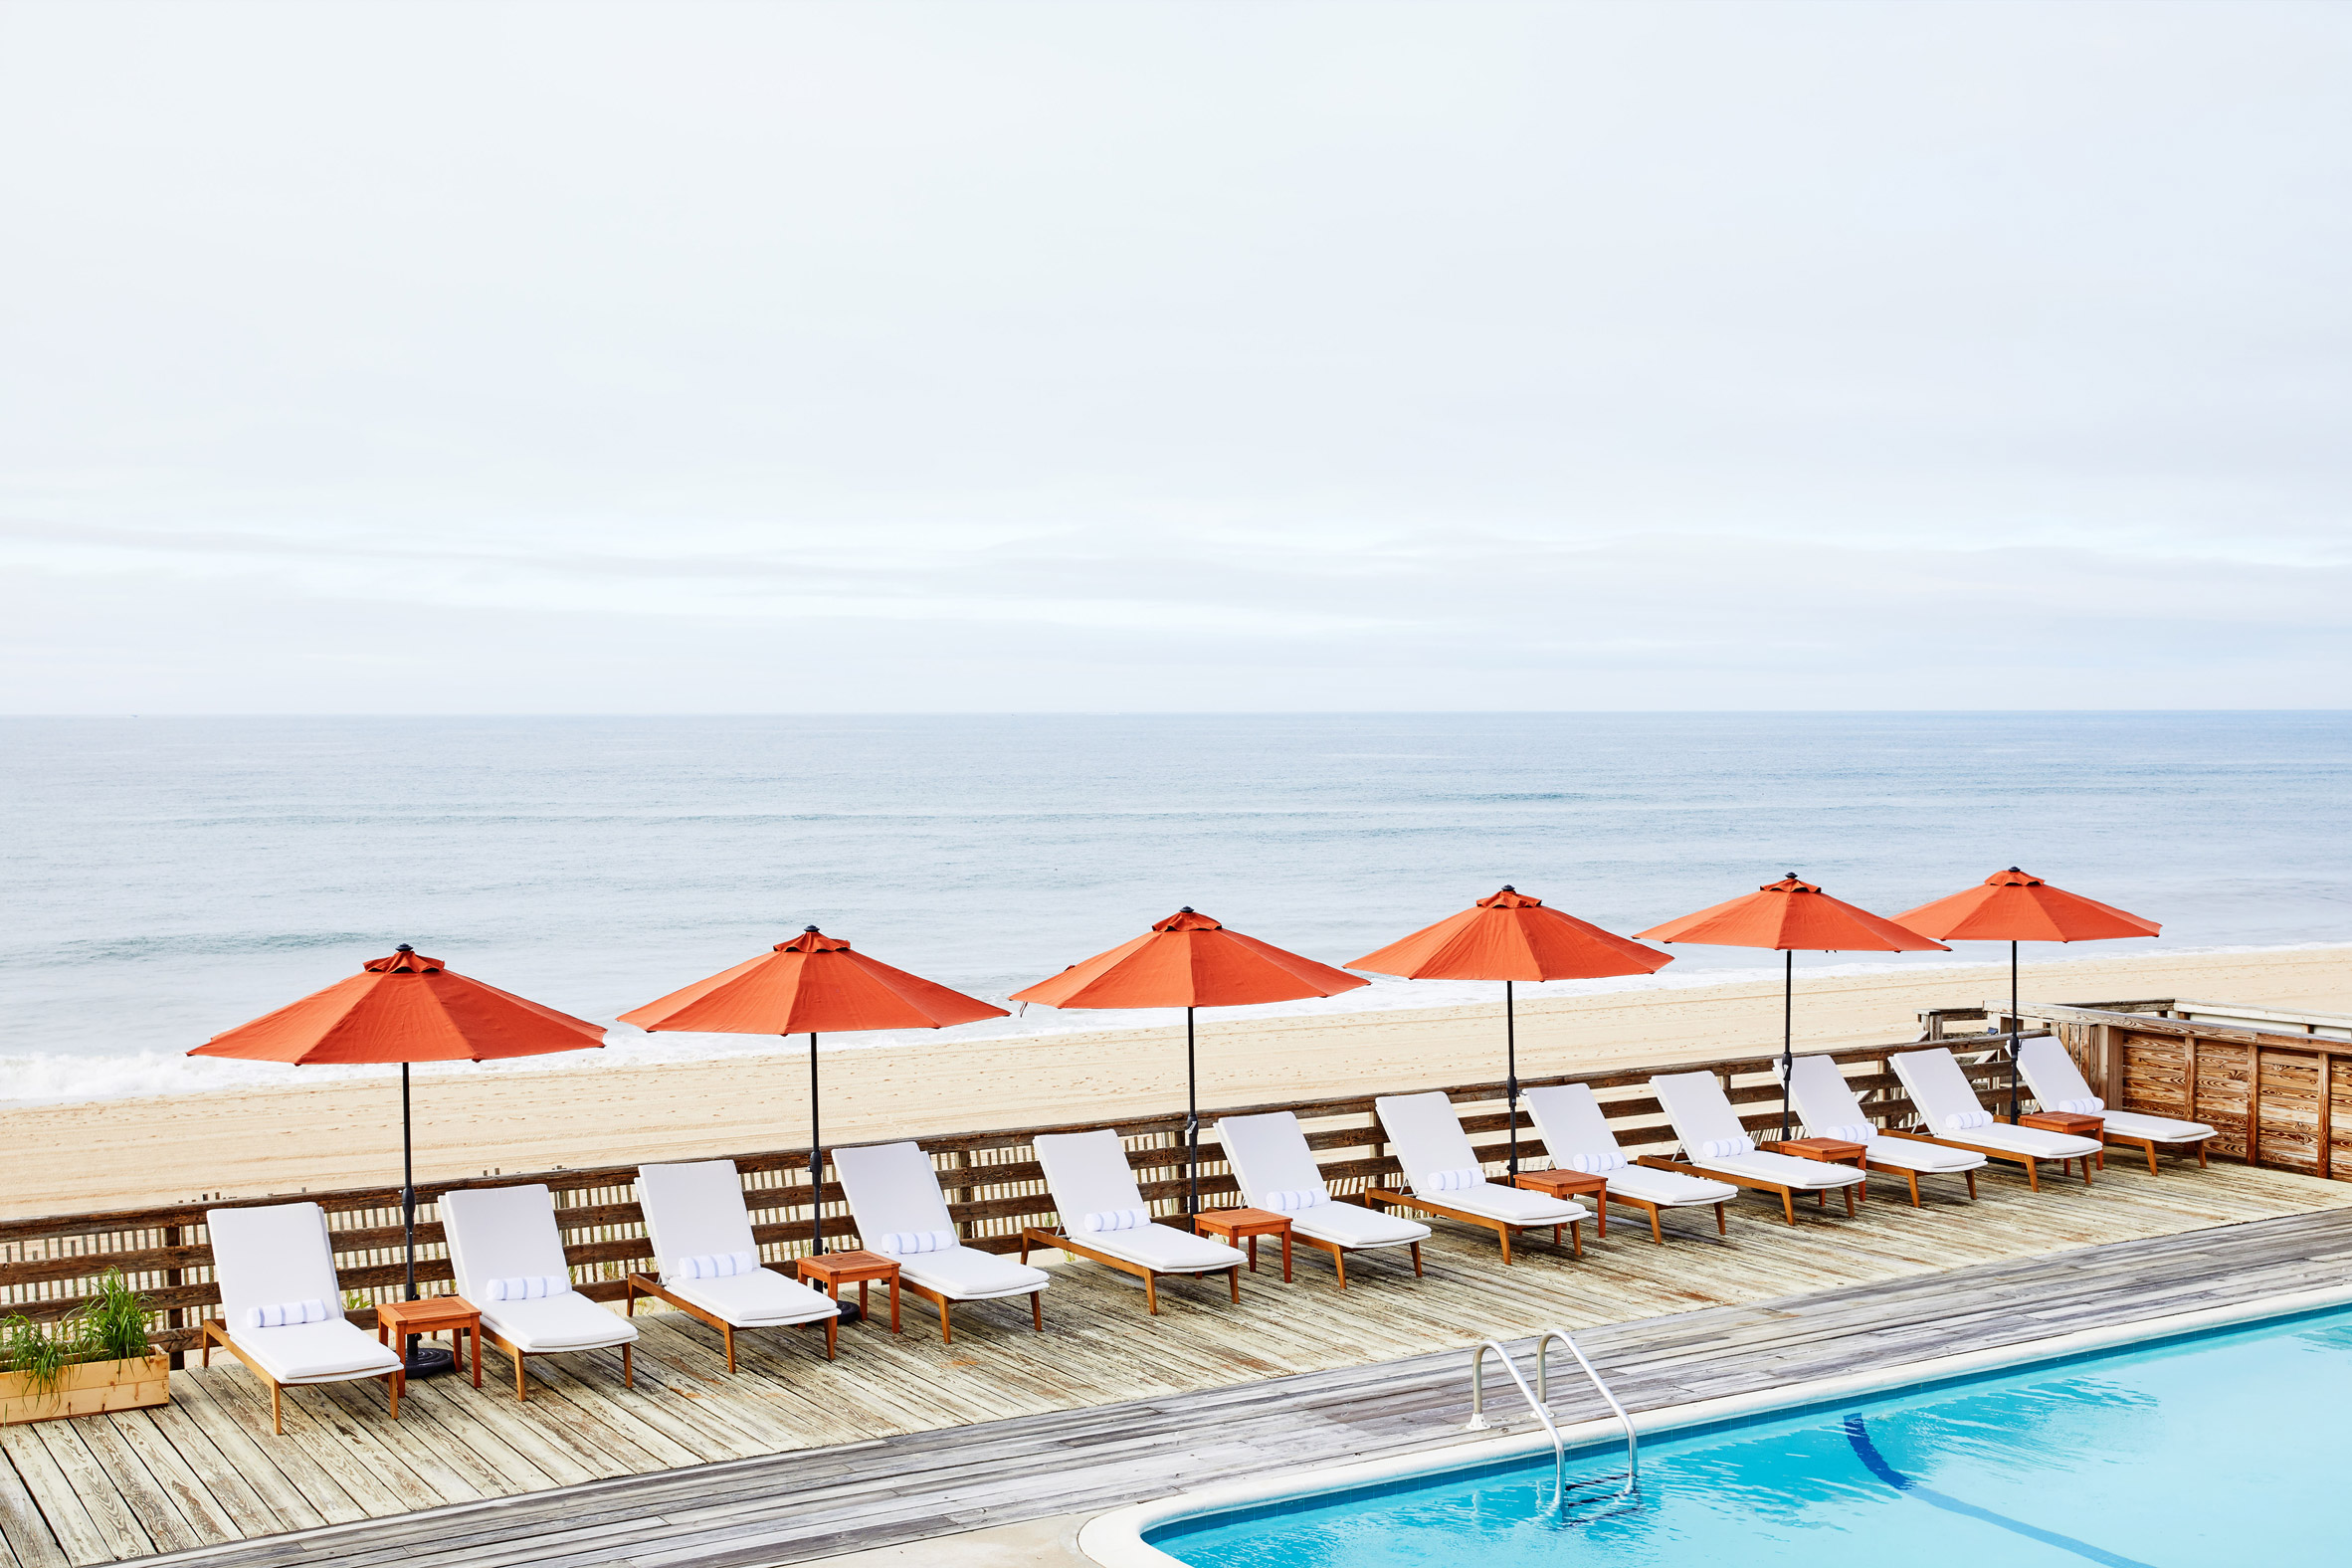 Montauk hotel takes its sand-coloured palette from its beachy surroundings